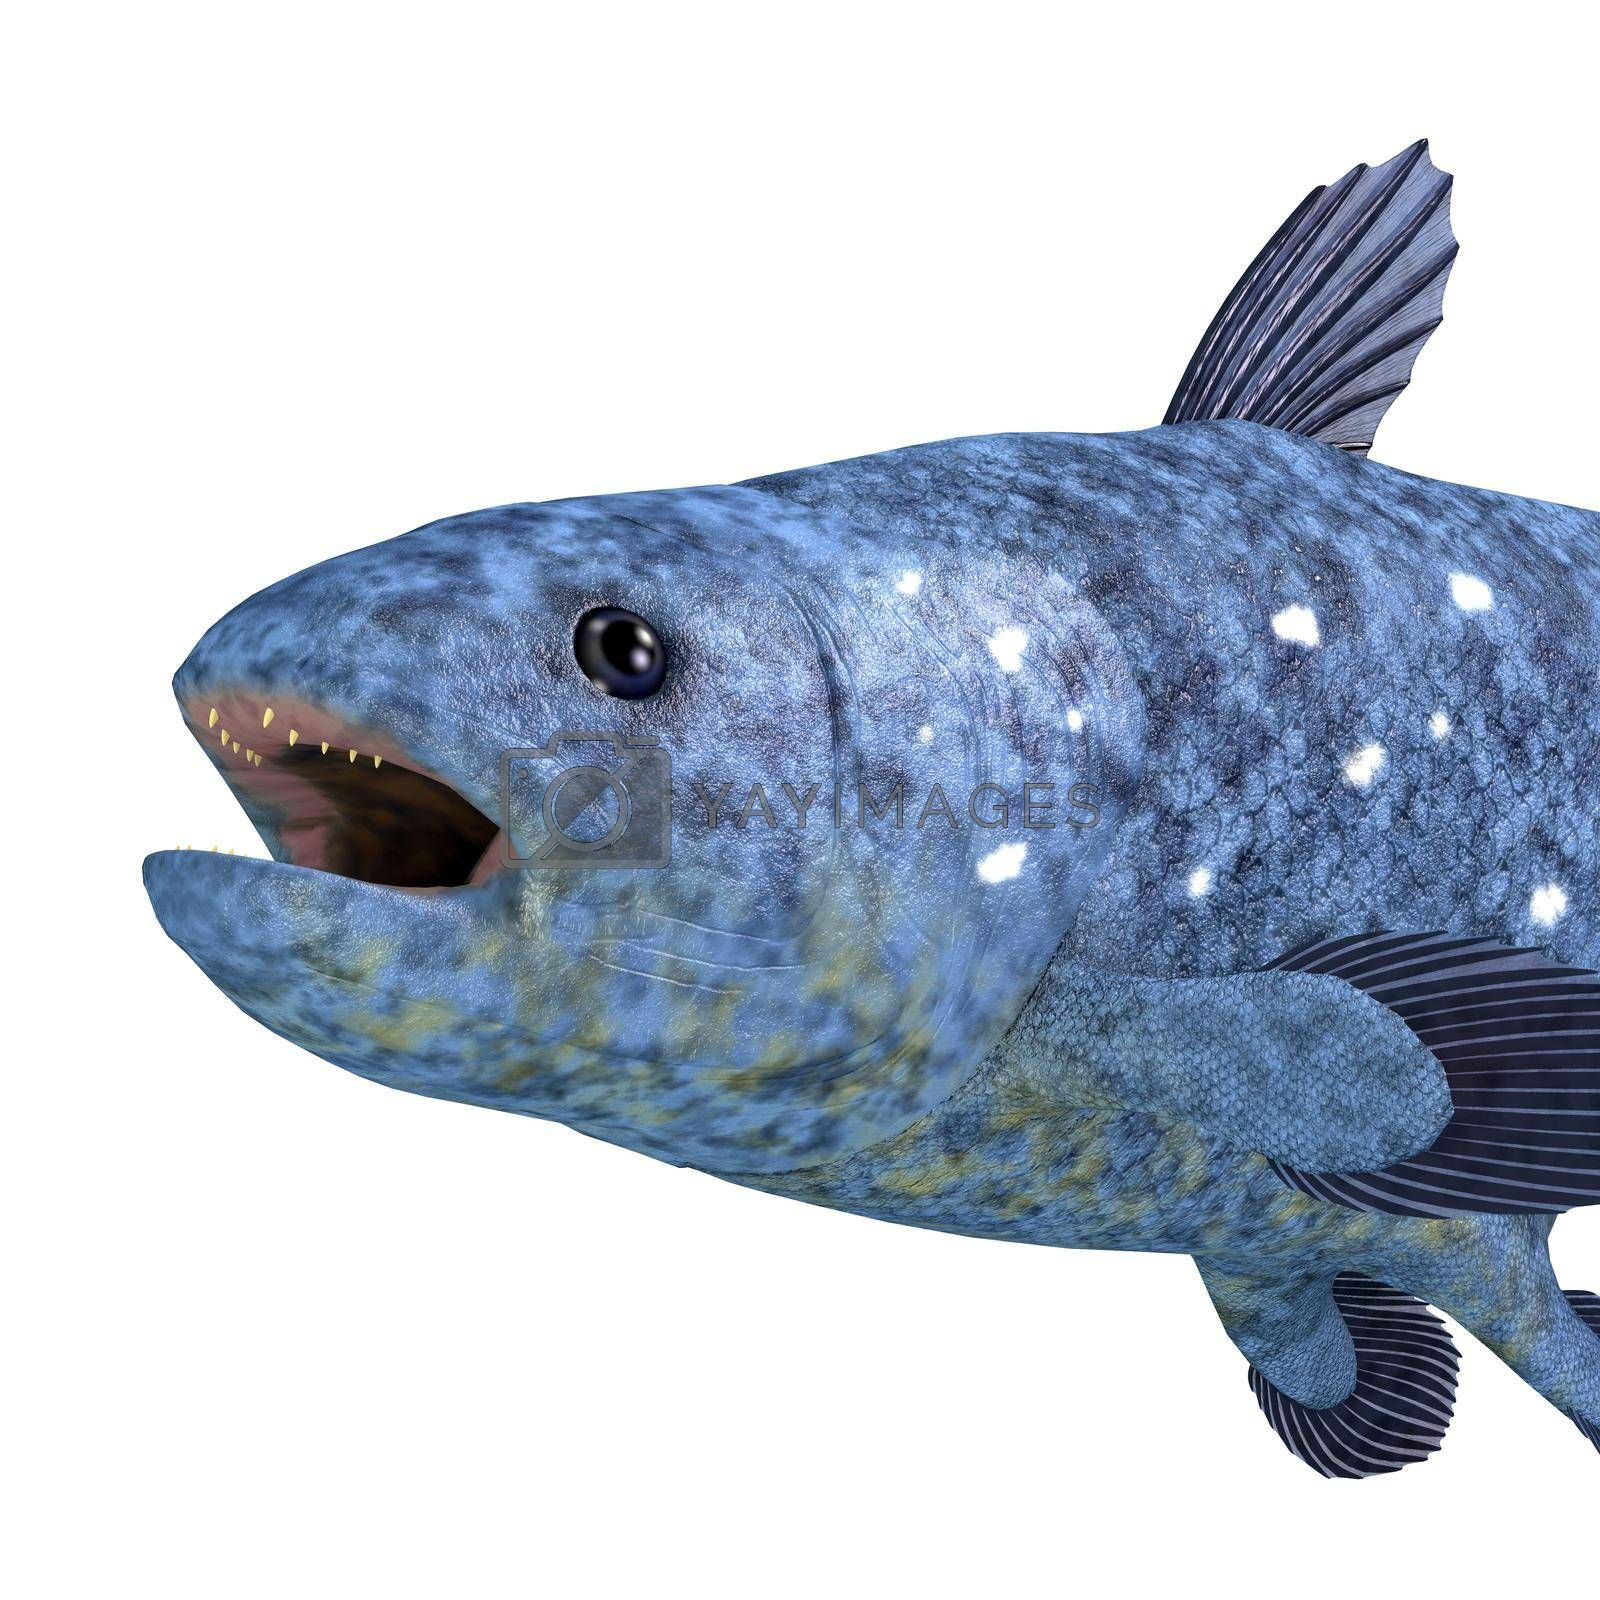 The Coelacanth fish was thought to be extinct but has found to still be a viable creature living in the world's oceans.